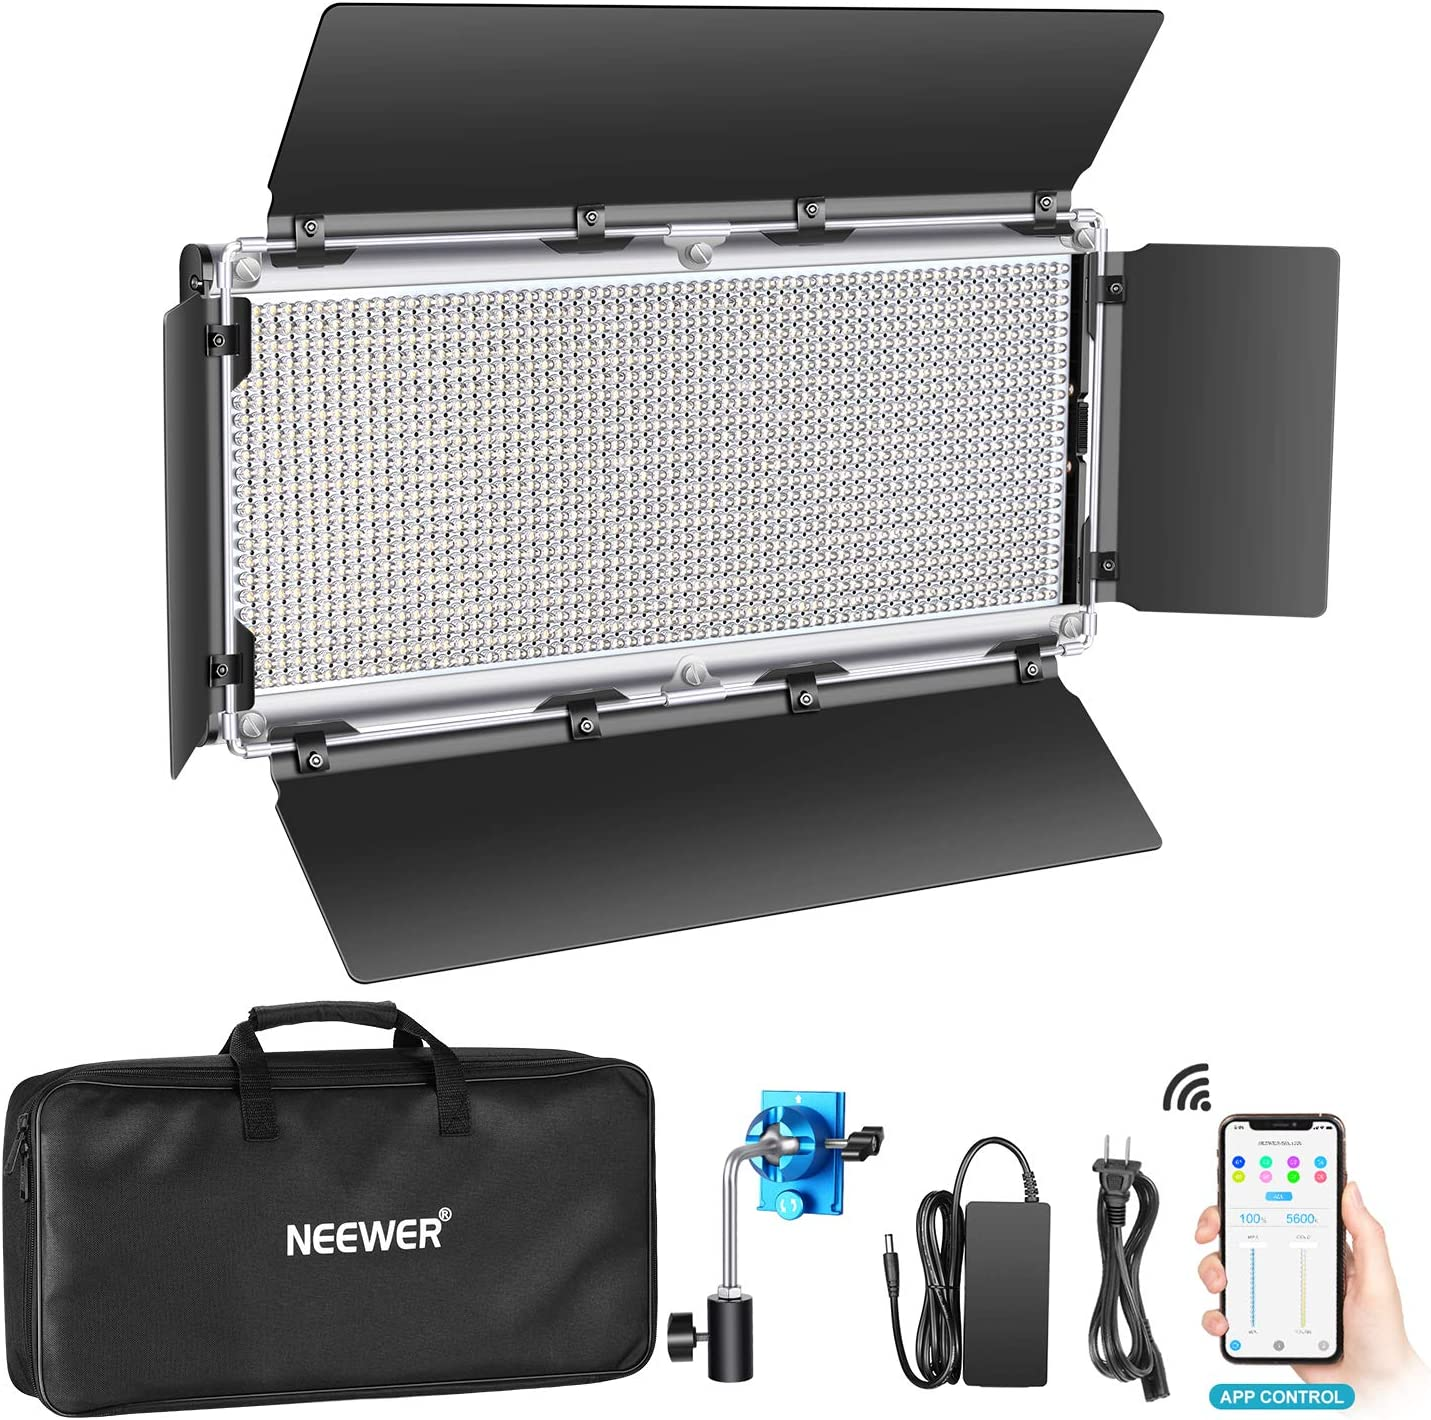 Neewer 1320 famous LED Video Light Our shop OFFers the best service APP with Intelligent System Control